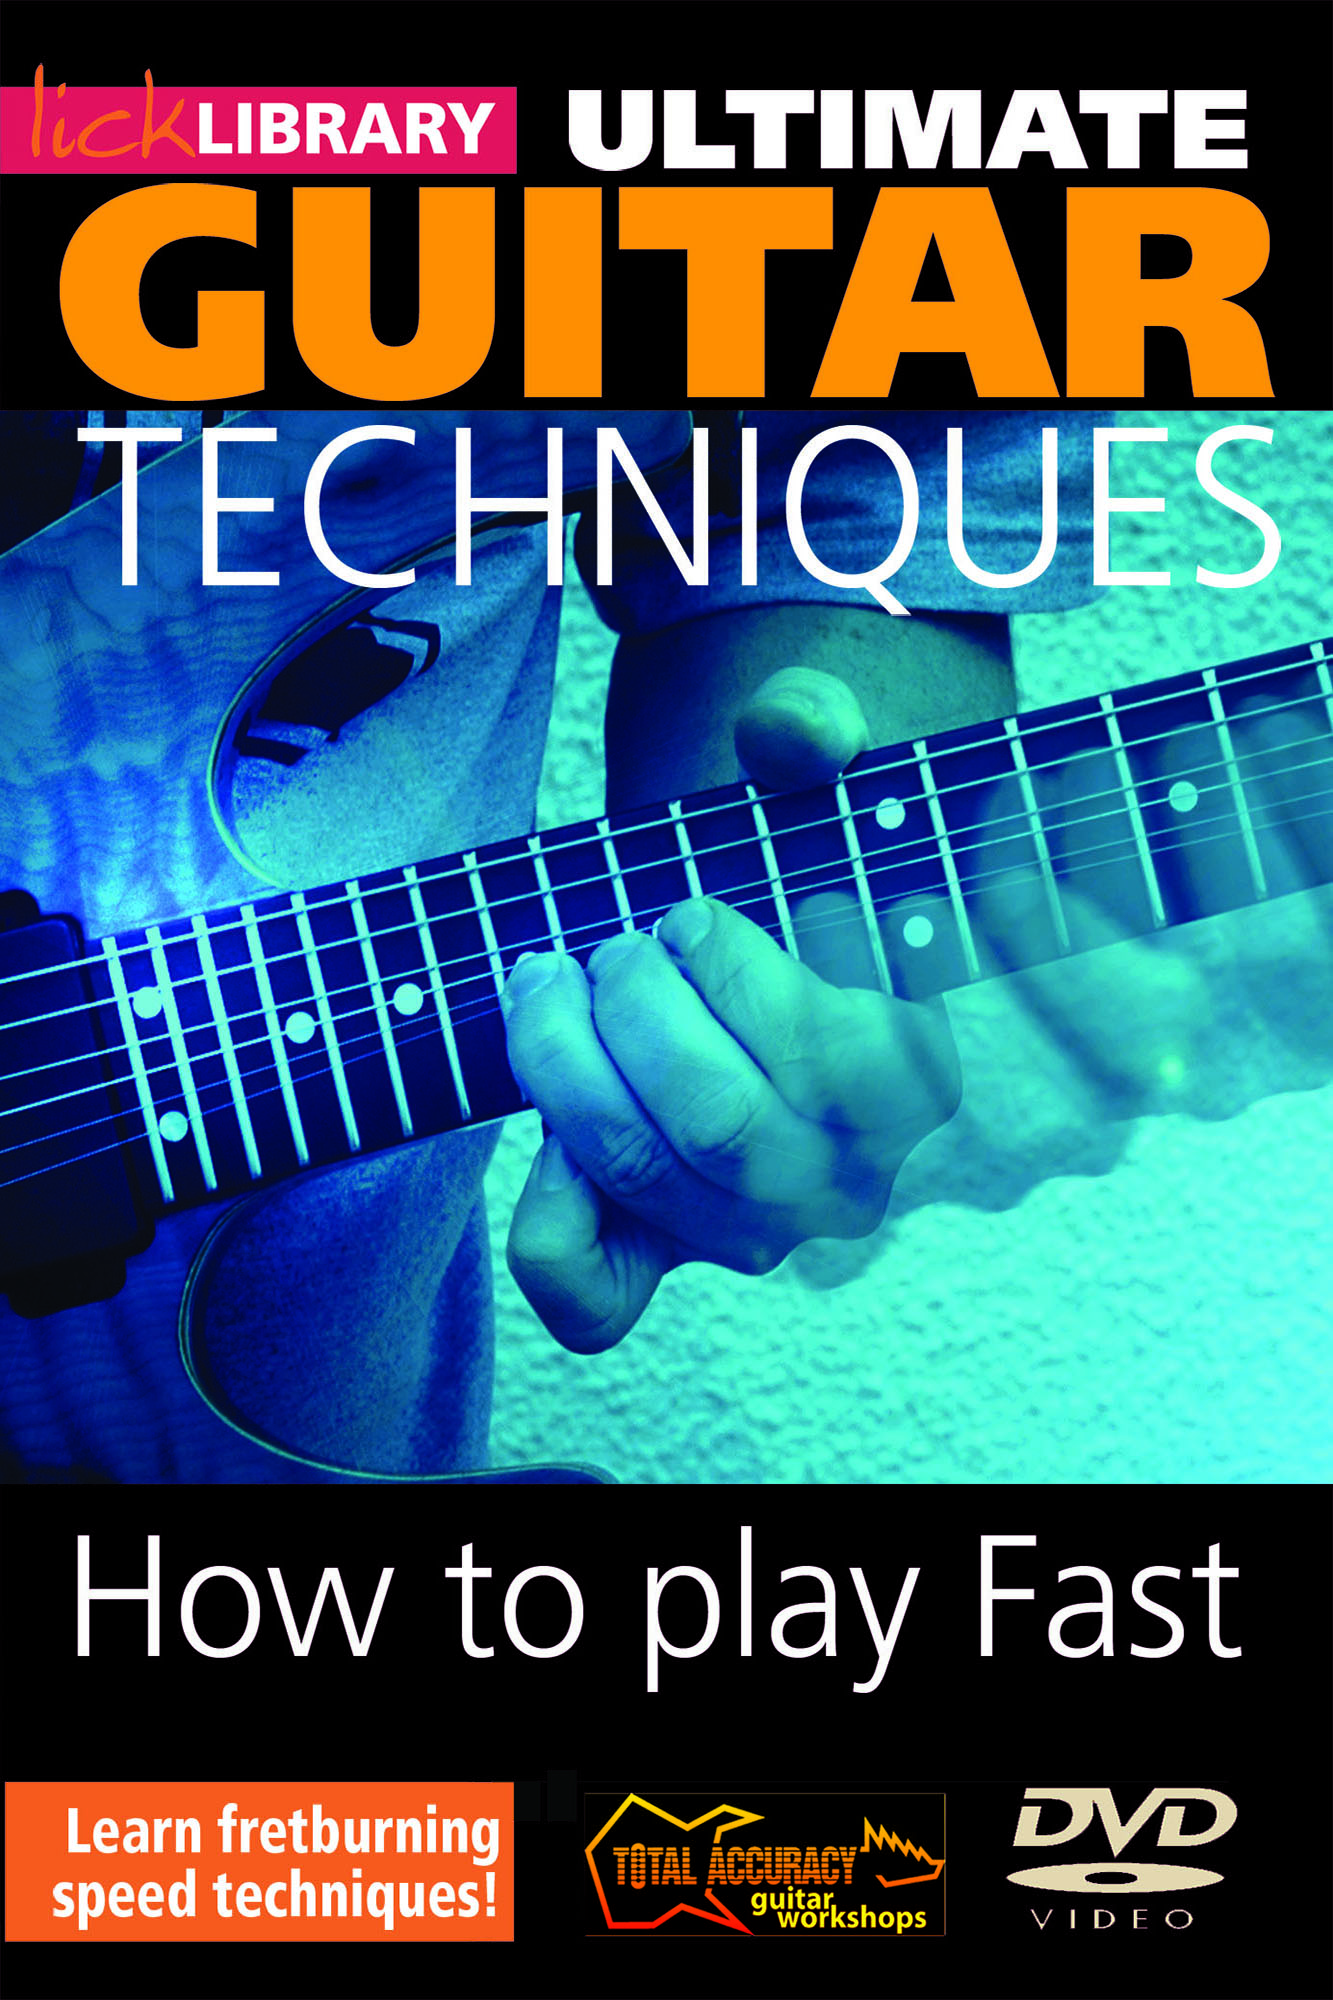 Ultimate Guitar - How To Play Fast